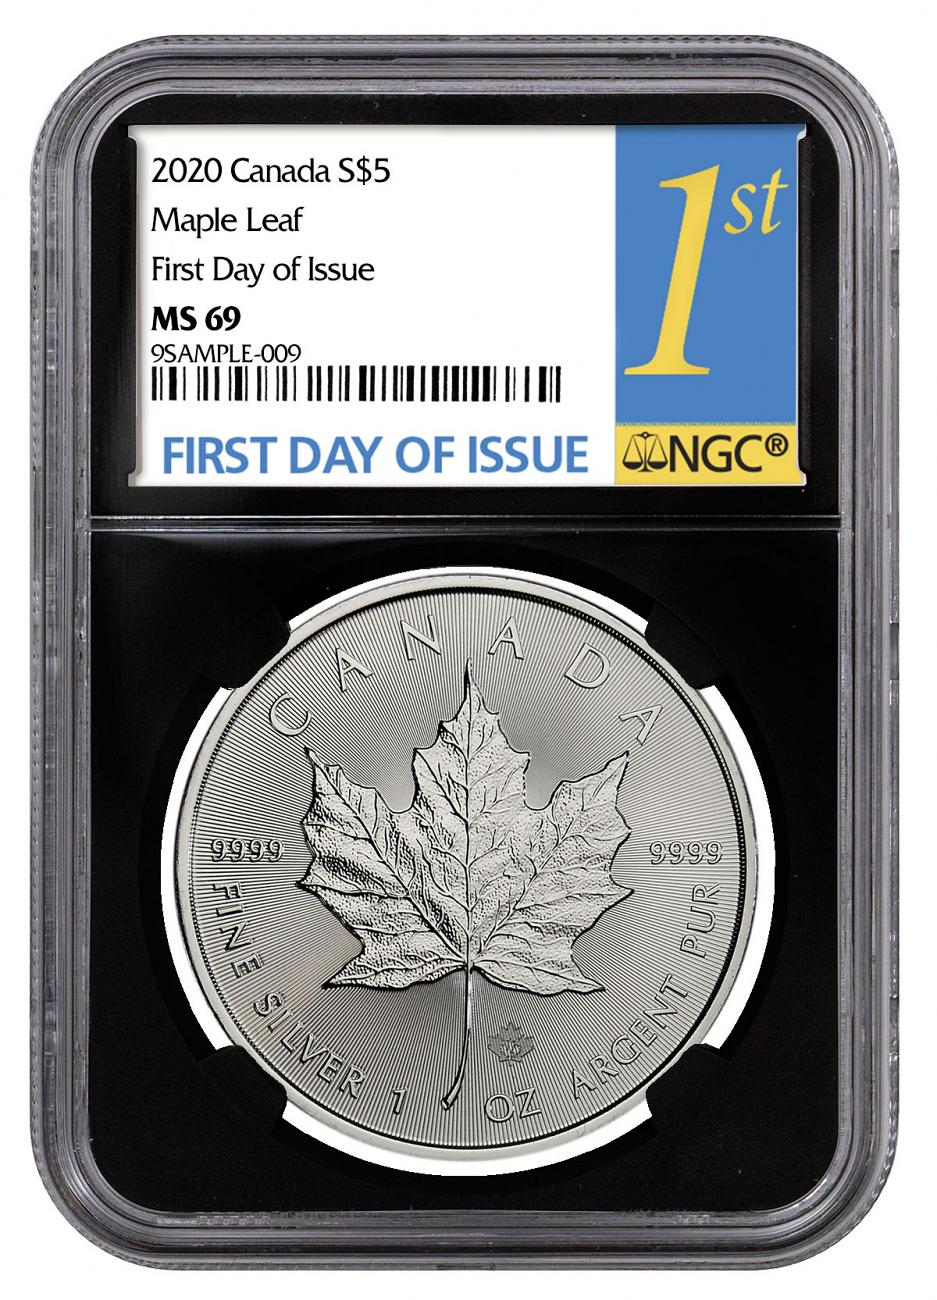 2020 Canada 1 oz Silver Maple Leaf $5 Coin NGC MS69 FDI Black Core Holder 1st Day Label